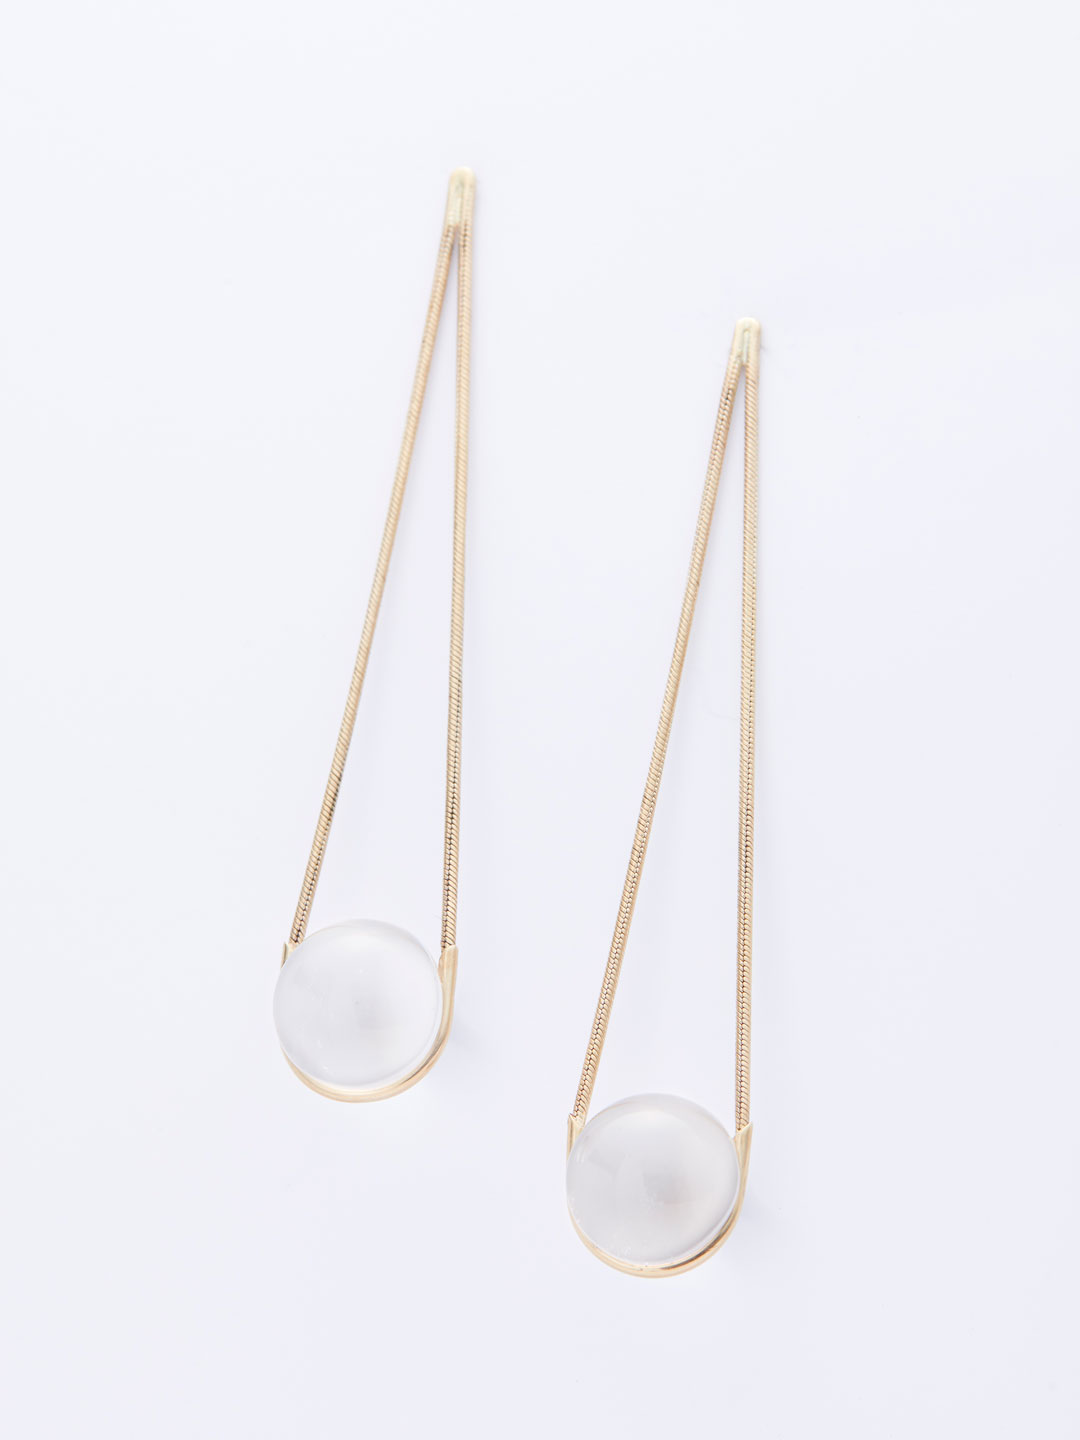 Lunar Drops Pierced Earrings - Yellow Gold